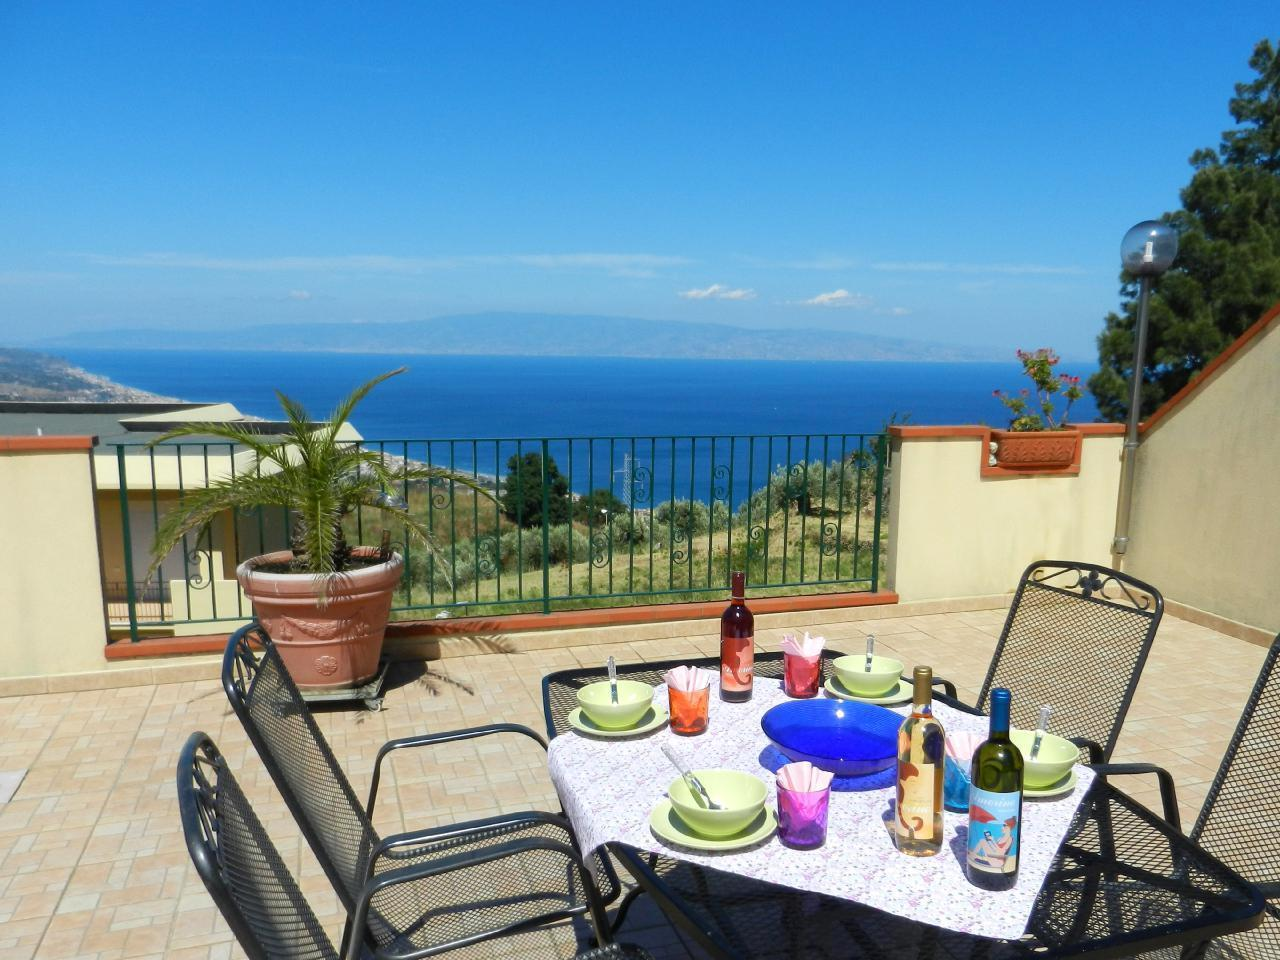 Holiday apartment Fewo mit Terrasse im Panorama-Dorf bei Taormina (737399), Forza d'Agro', Messina, Sicily, Italy, picture 10